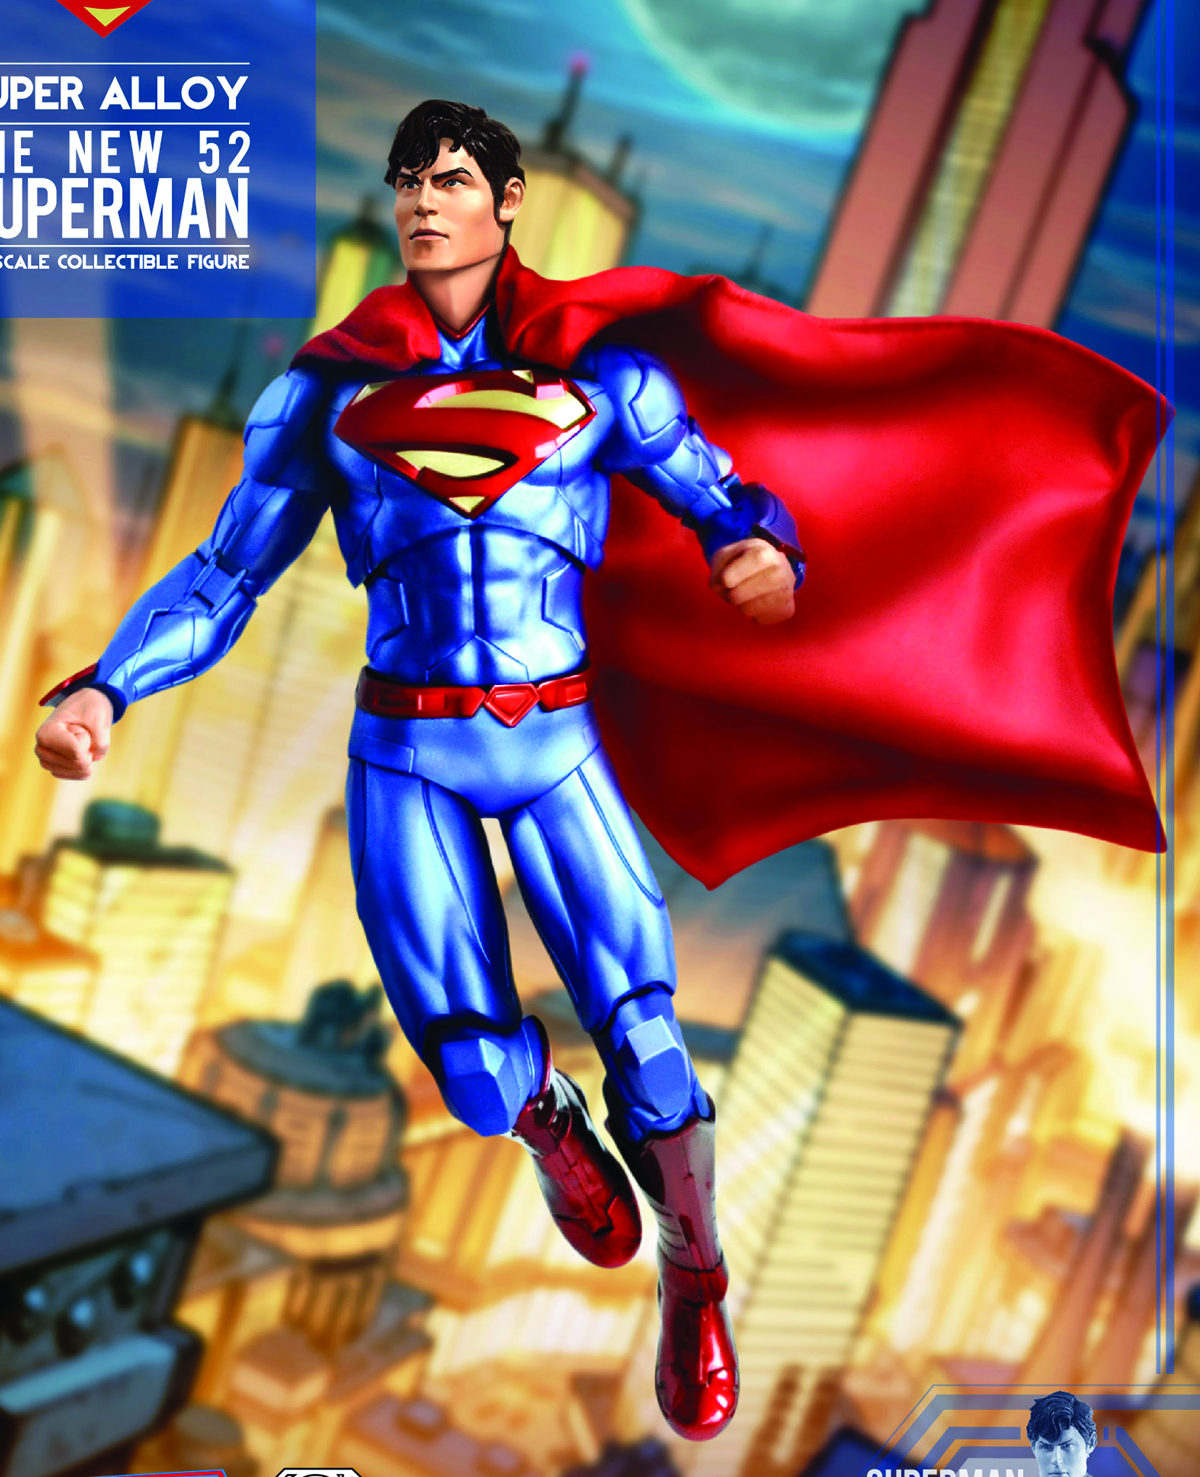 NEW 52 SUPERMAN SUPER ALLOY 1/6 SCALE FIG